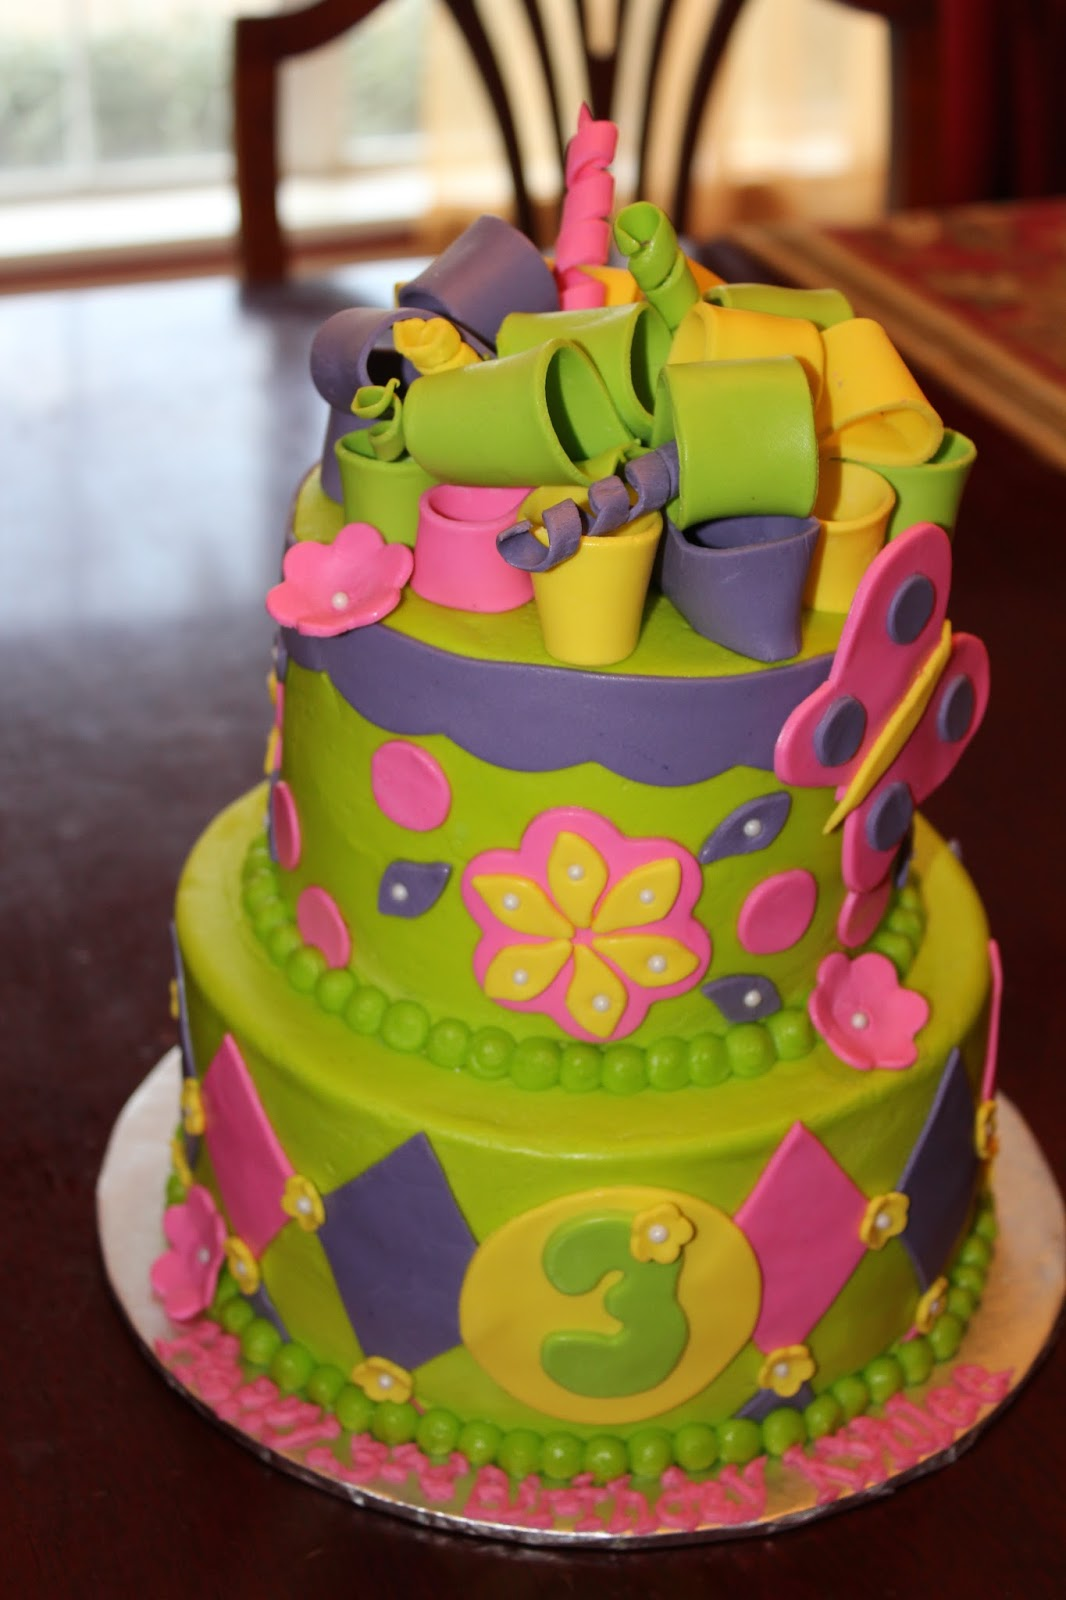 A blissful bash colorful flower birthday cake colorful flower birthday cake izmirmasajfo